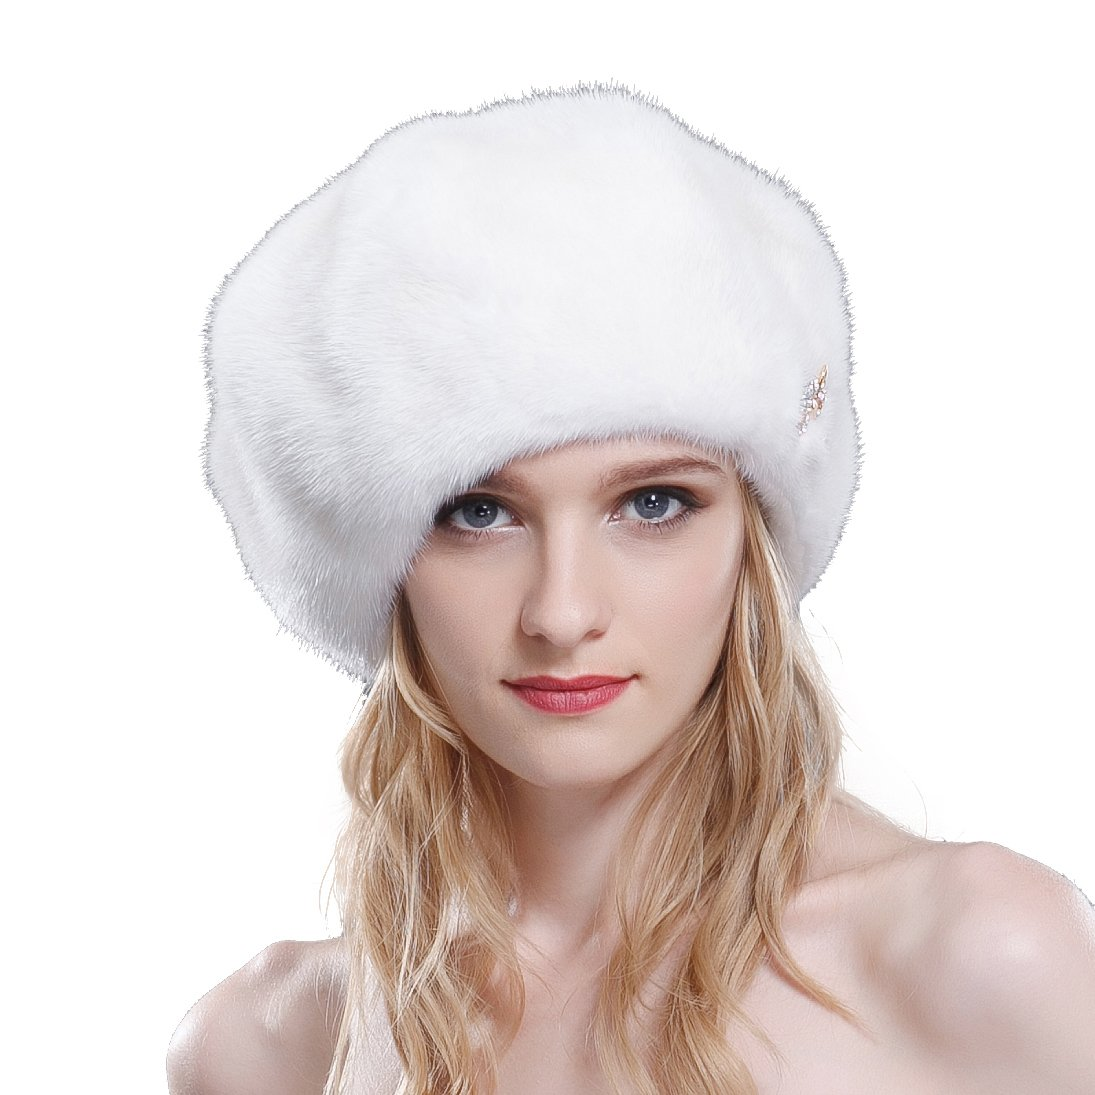 URSFUR Ladie's Mink Full Fur Beret Hats (One Size, White) by URSFUR